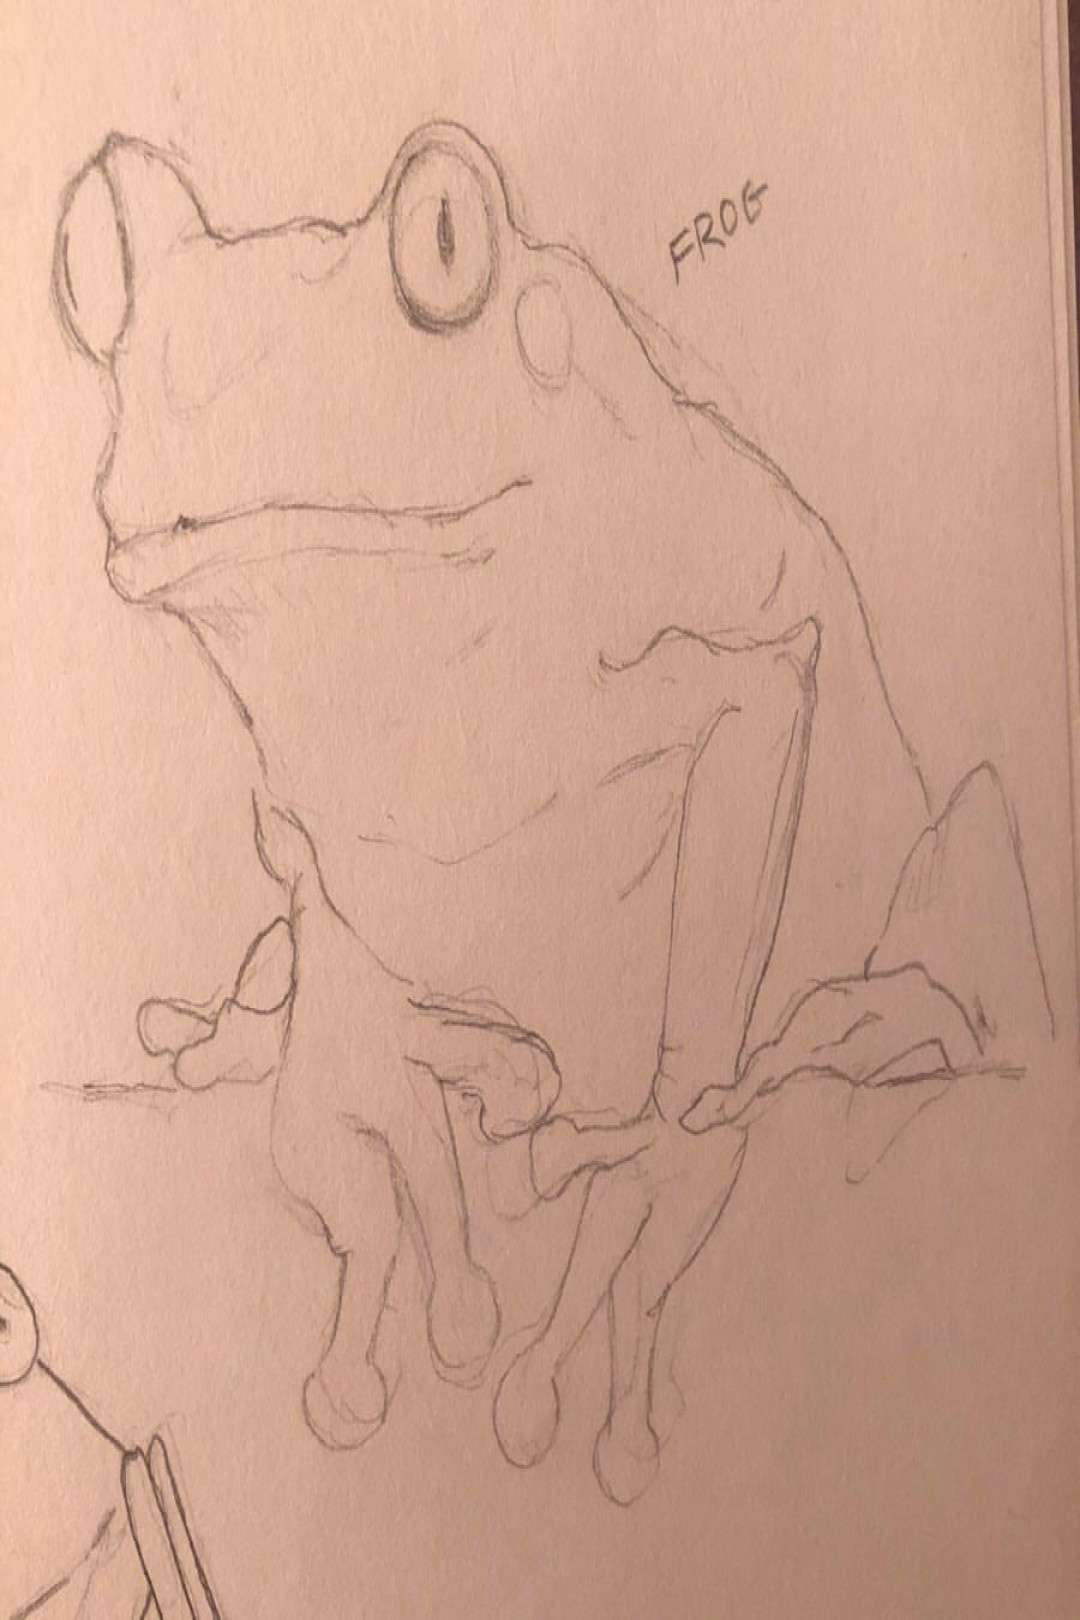 Thoughts on frogs,,,, . . . . . . . . . . . . Hashtags cuz Im de